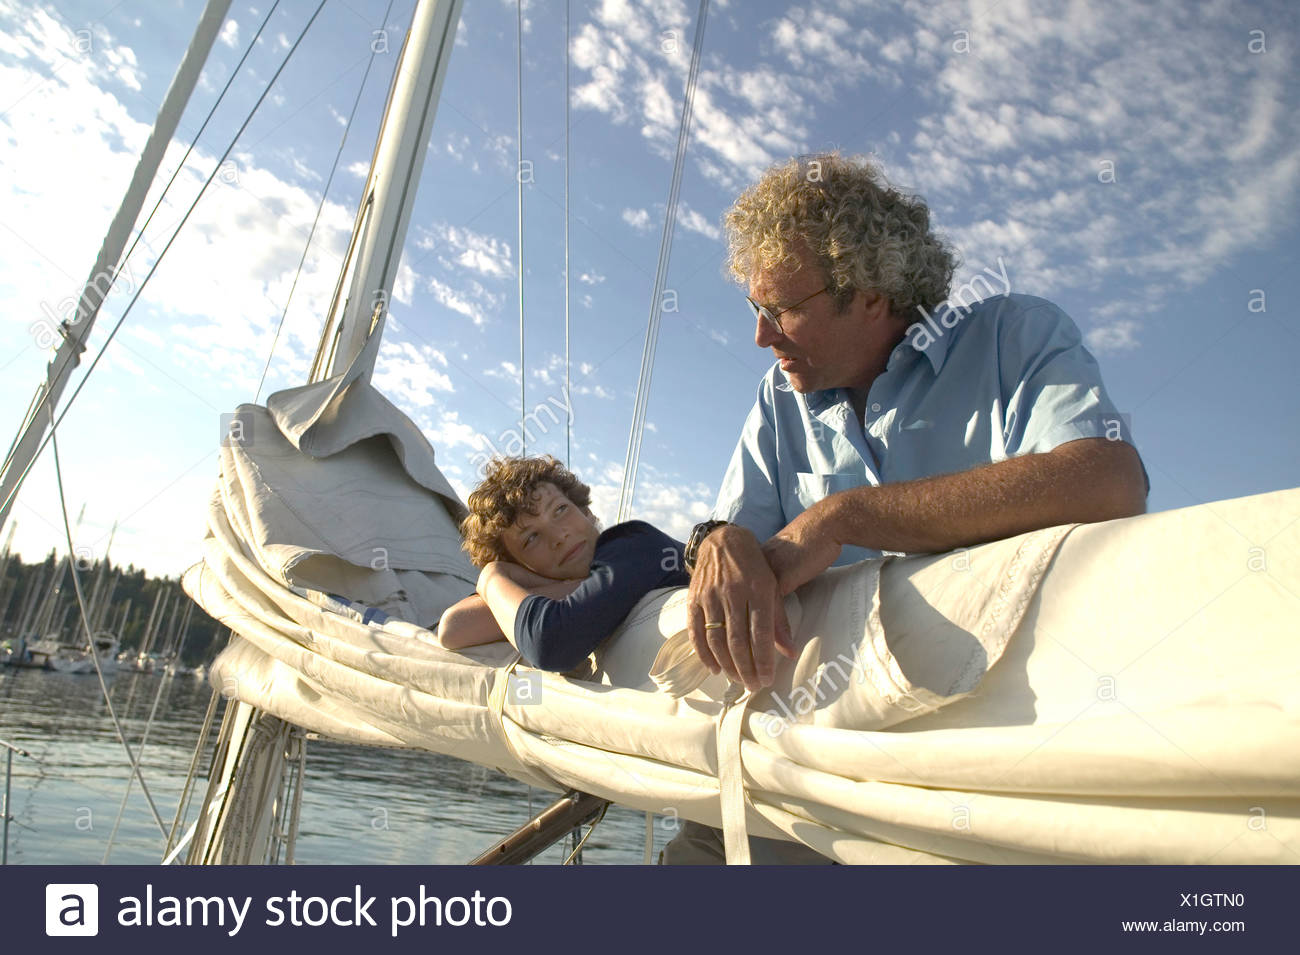 Father and son untying sail - Stock Image